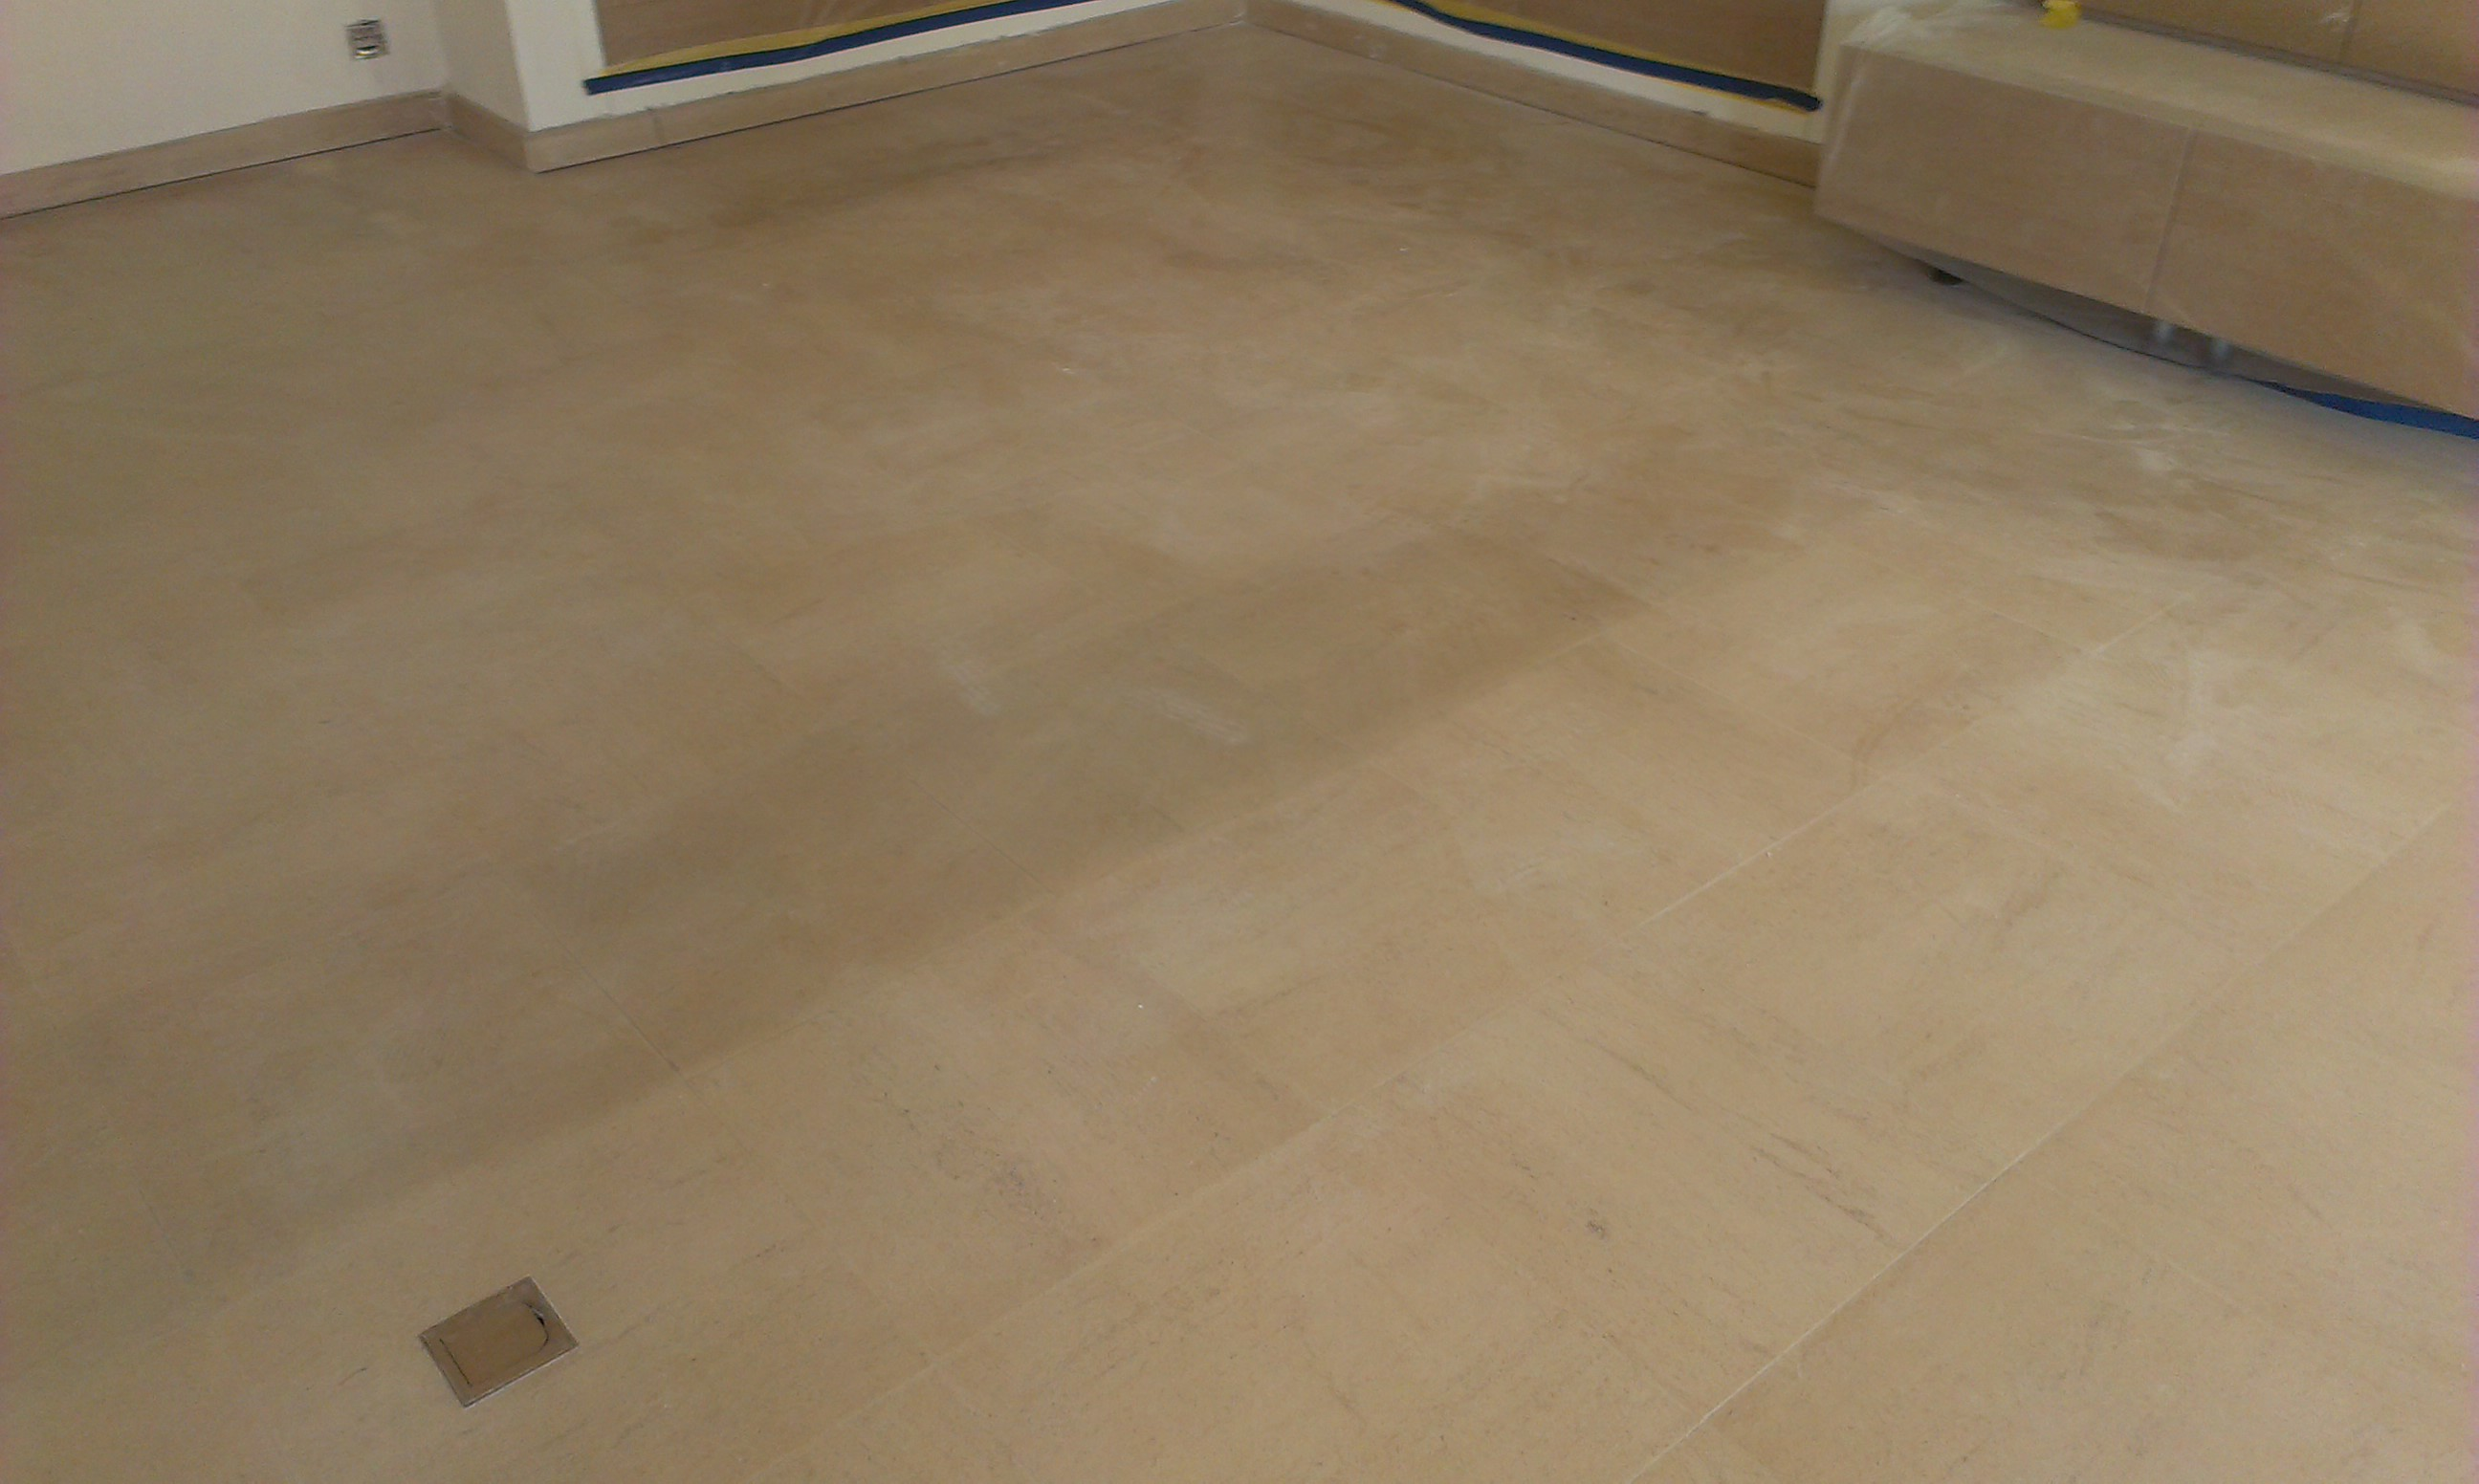 The natural stone floor after removing the carpeting and before cleaning and sealing